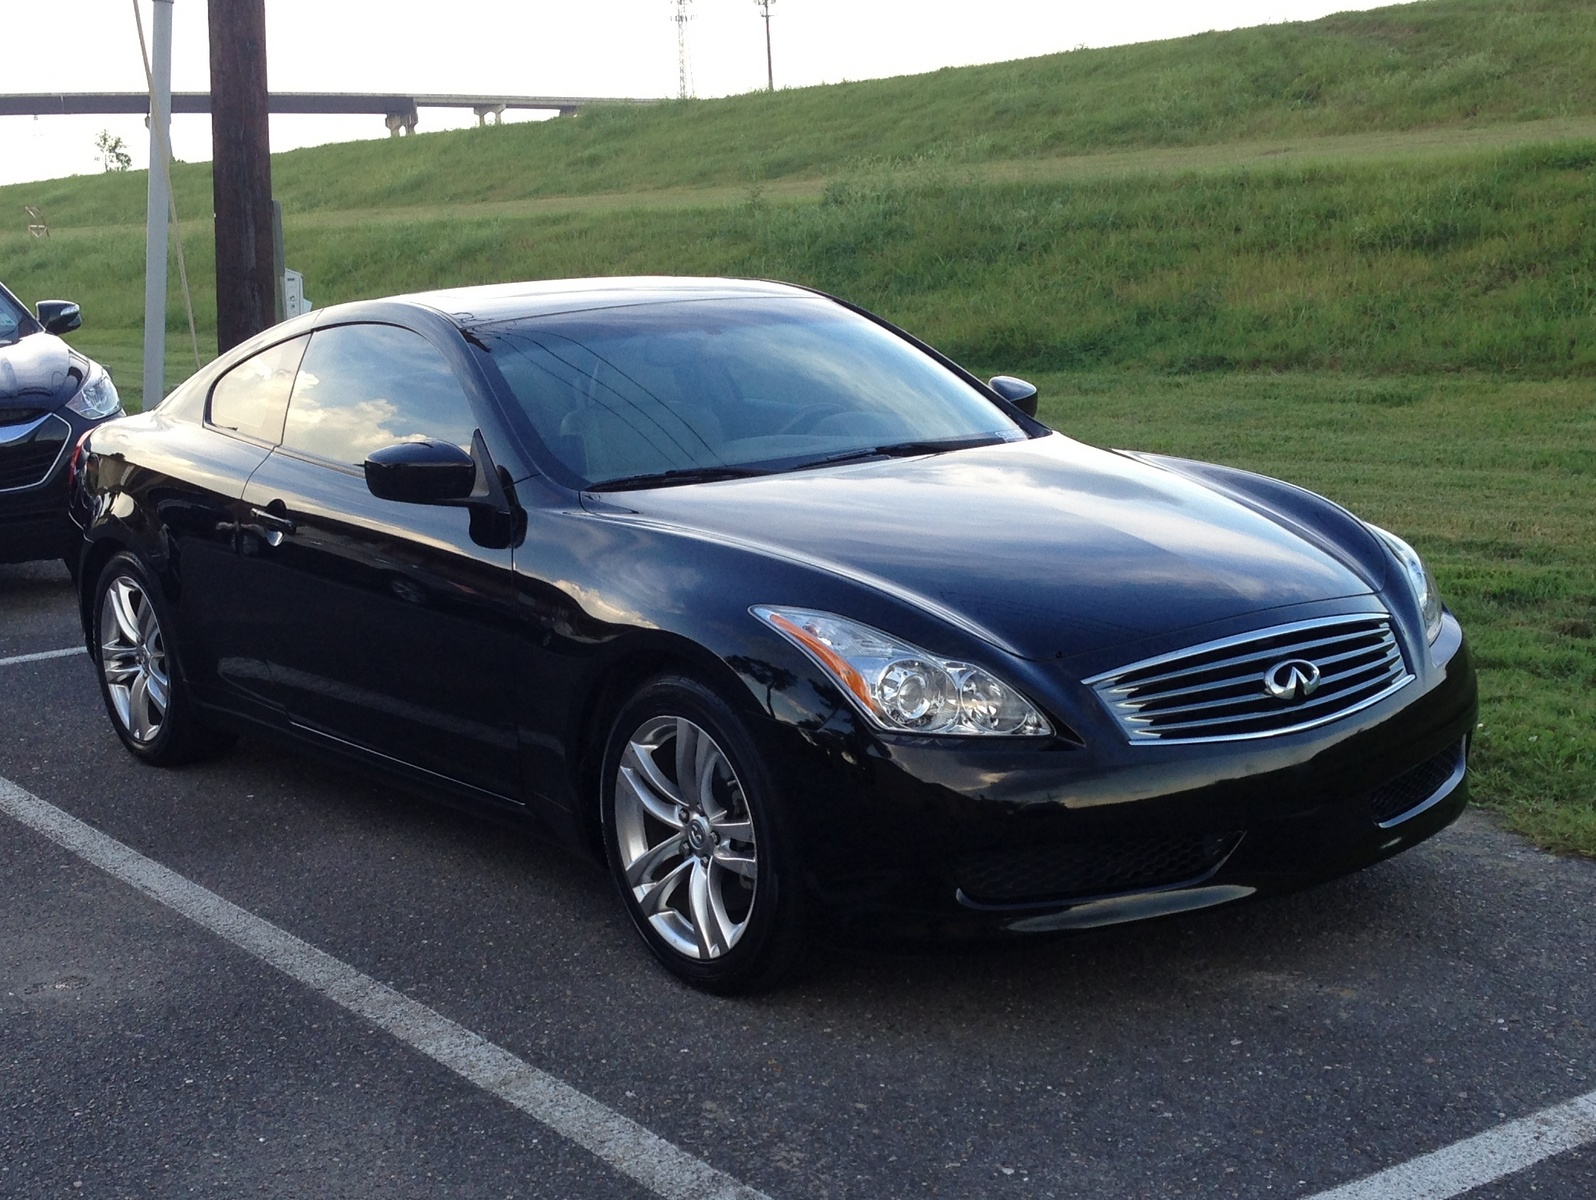 2009 infiniti g37 sedan reviews infiniti g37 sedan price. Black Bedroom Furniture Sets. Home Design Ideas